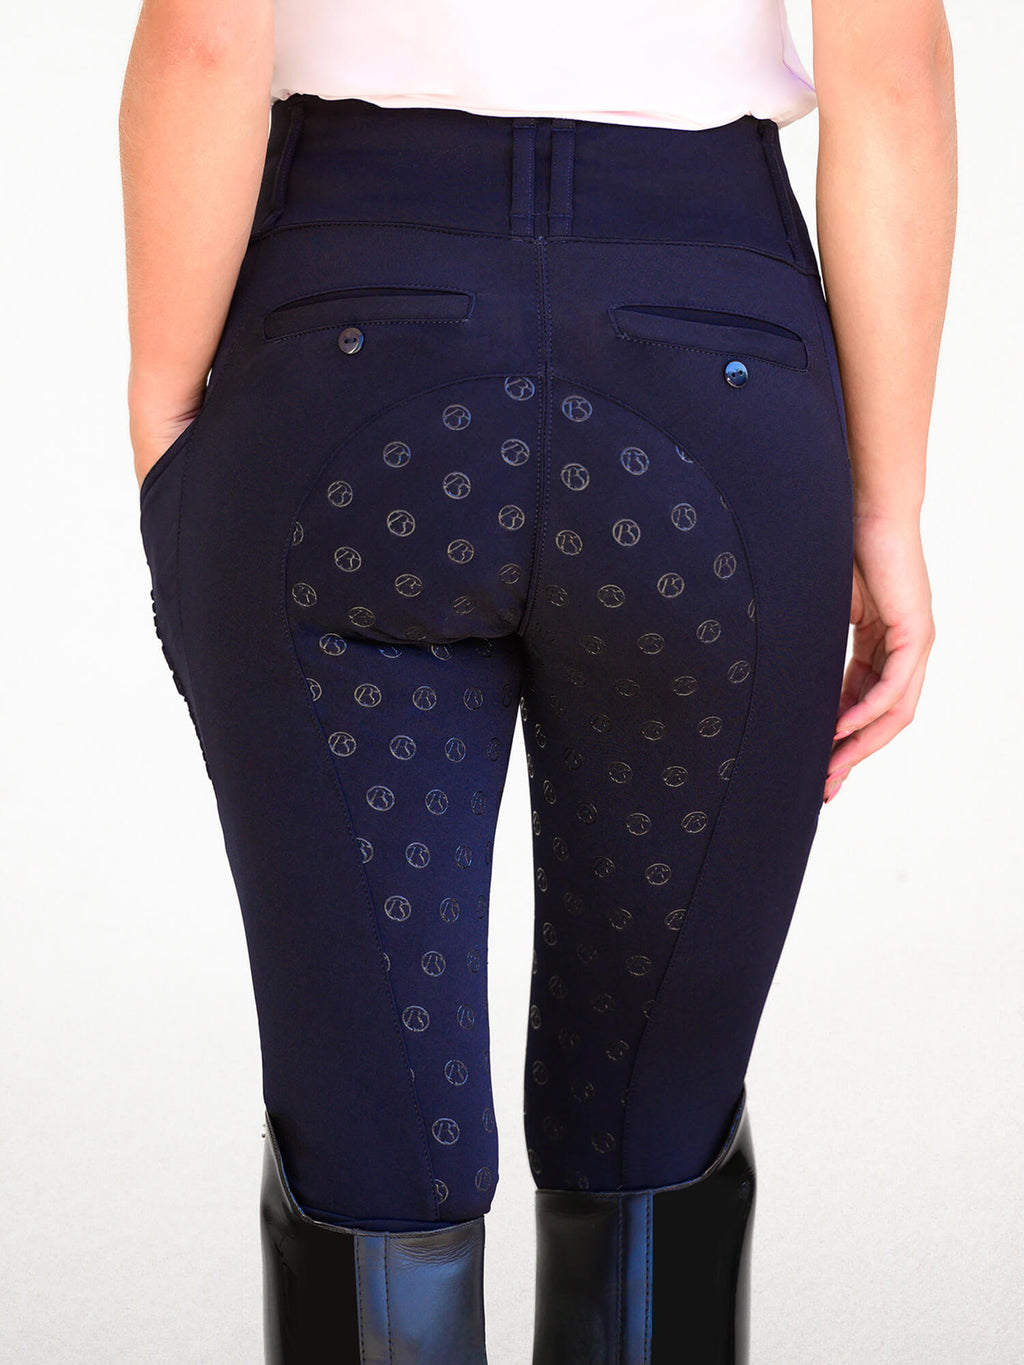 PS of Sweden Mathilde navy riding tights